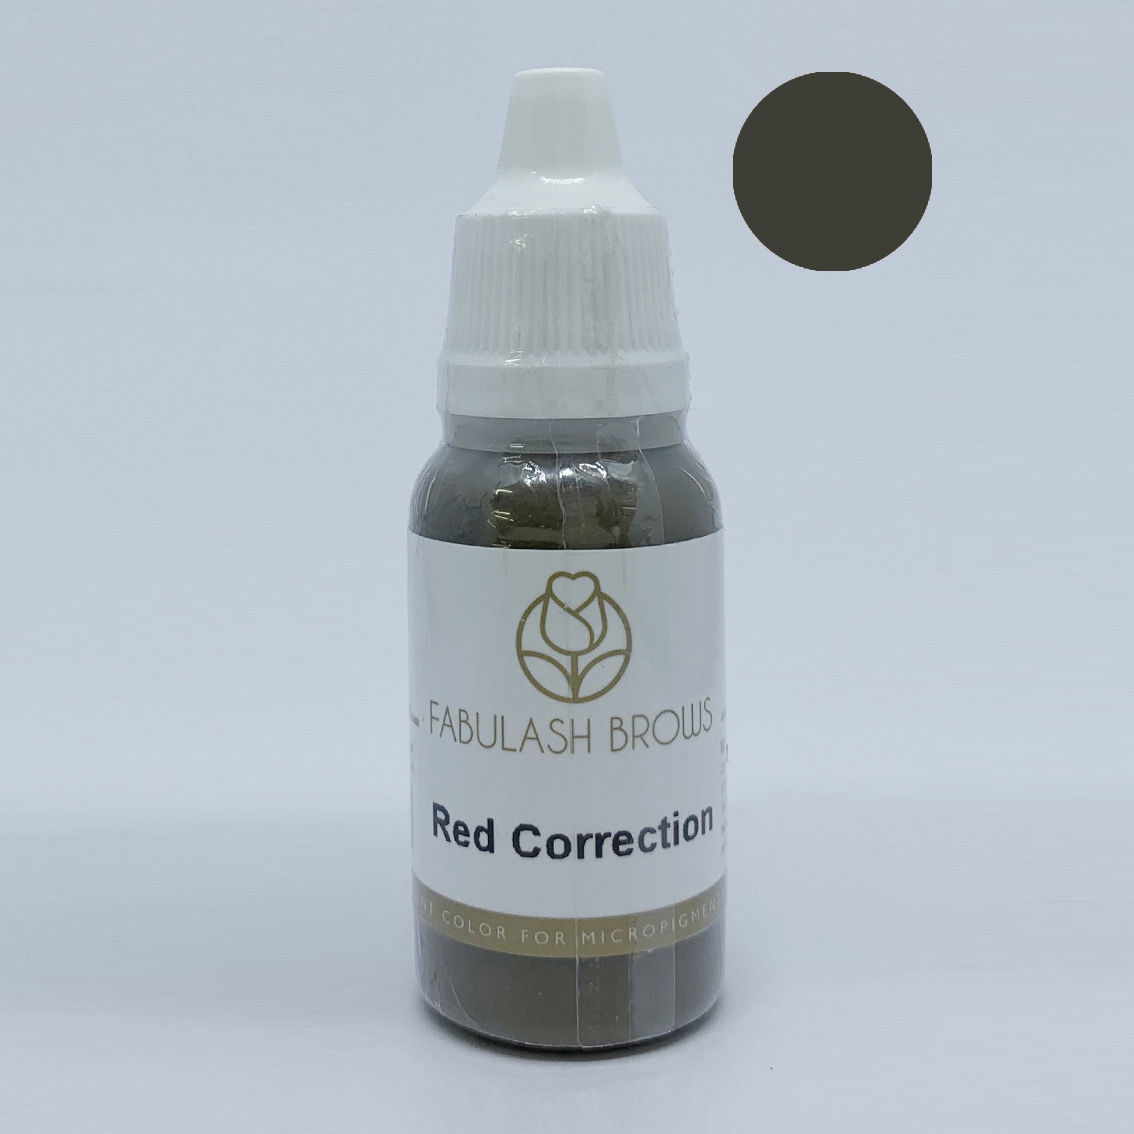 Fabulash Brows Pigment 15ml_Red Correction